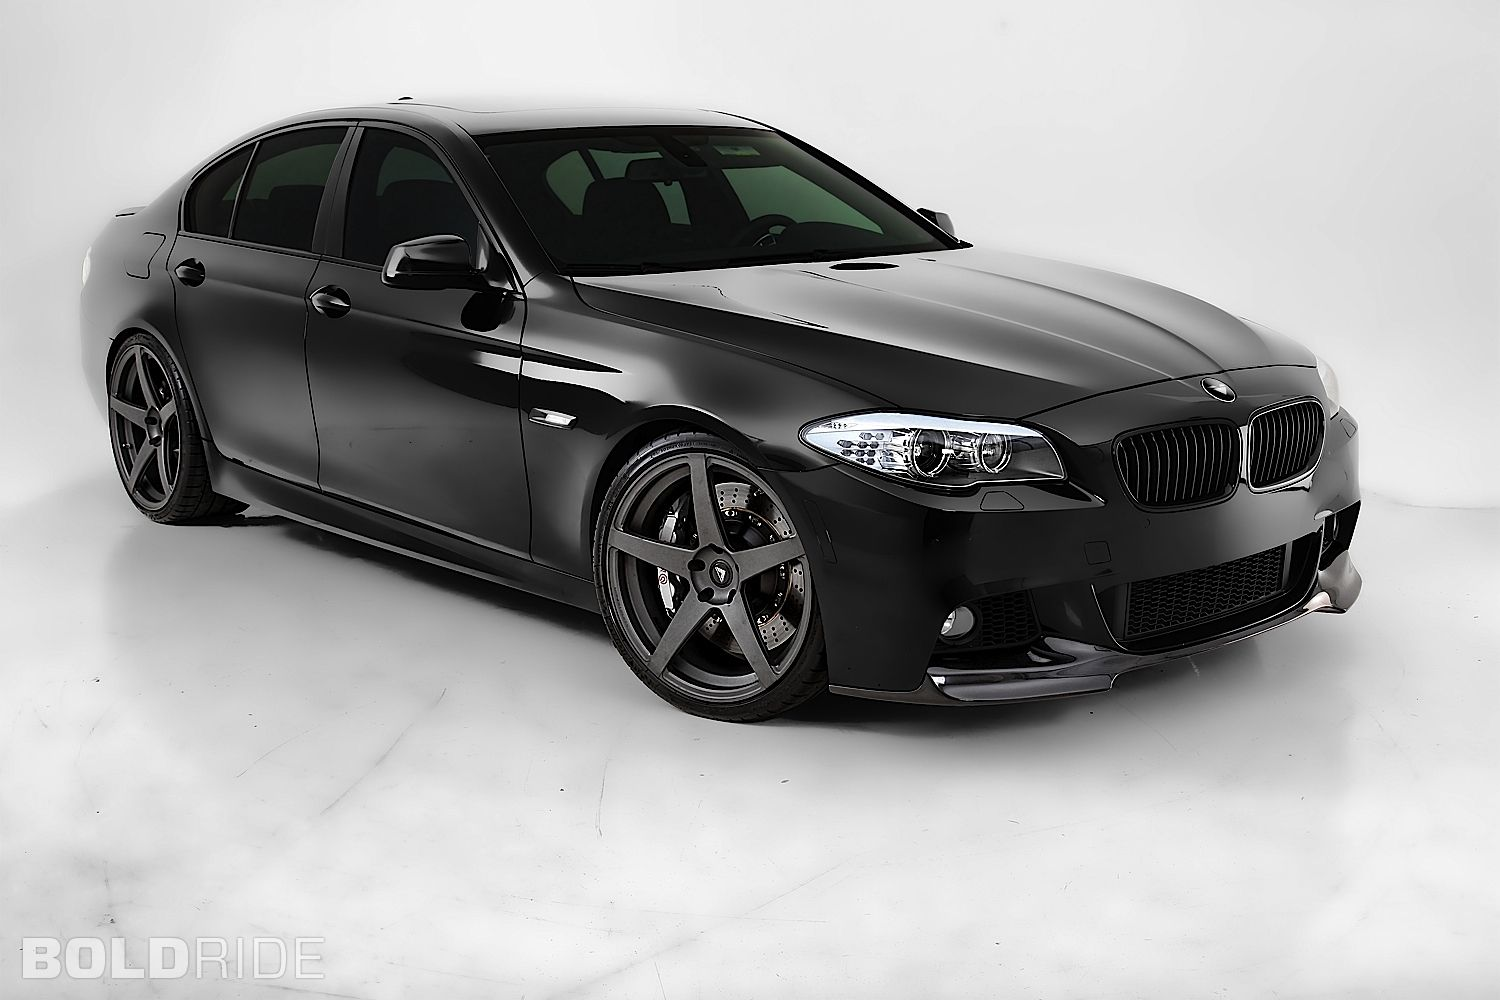 Bmw 5 Series Love The All Black On This Car Bmw Bmw 5